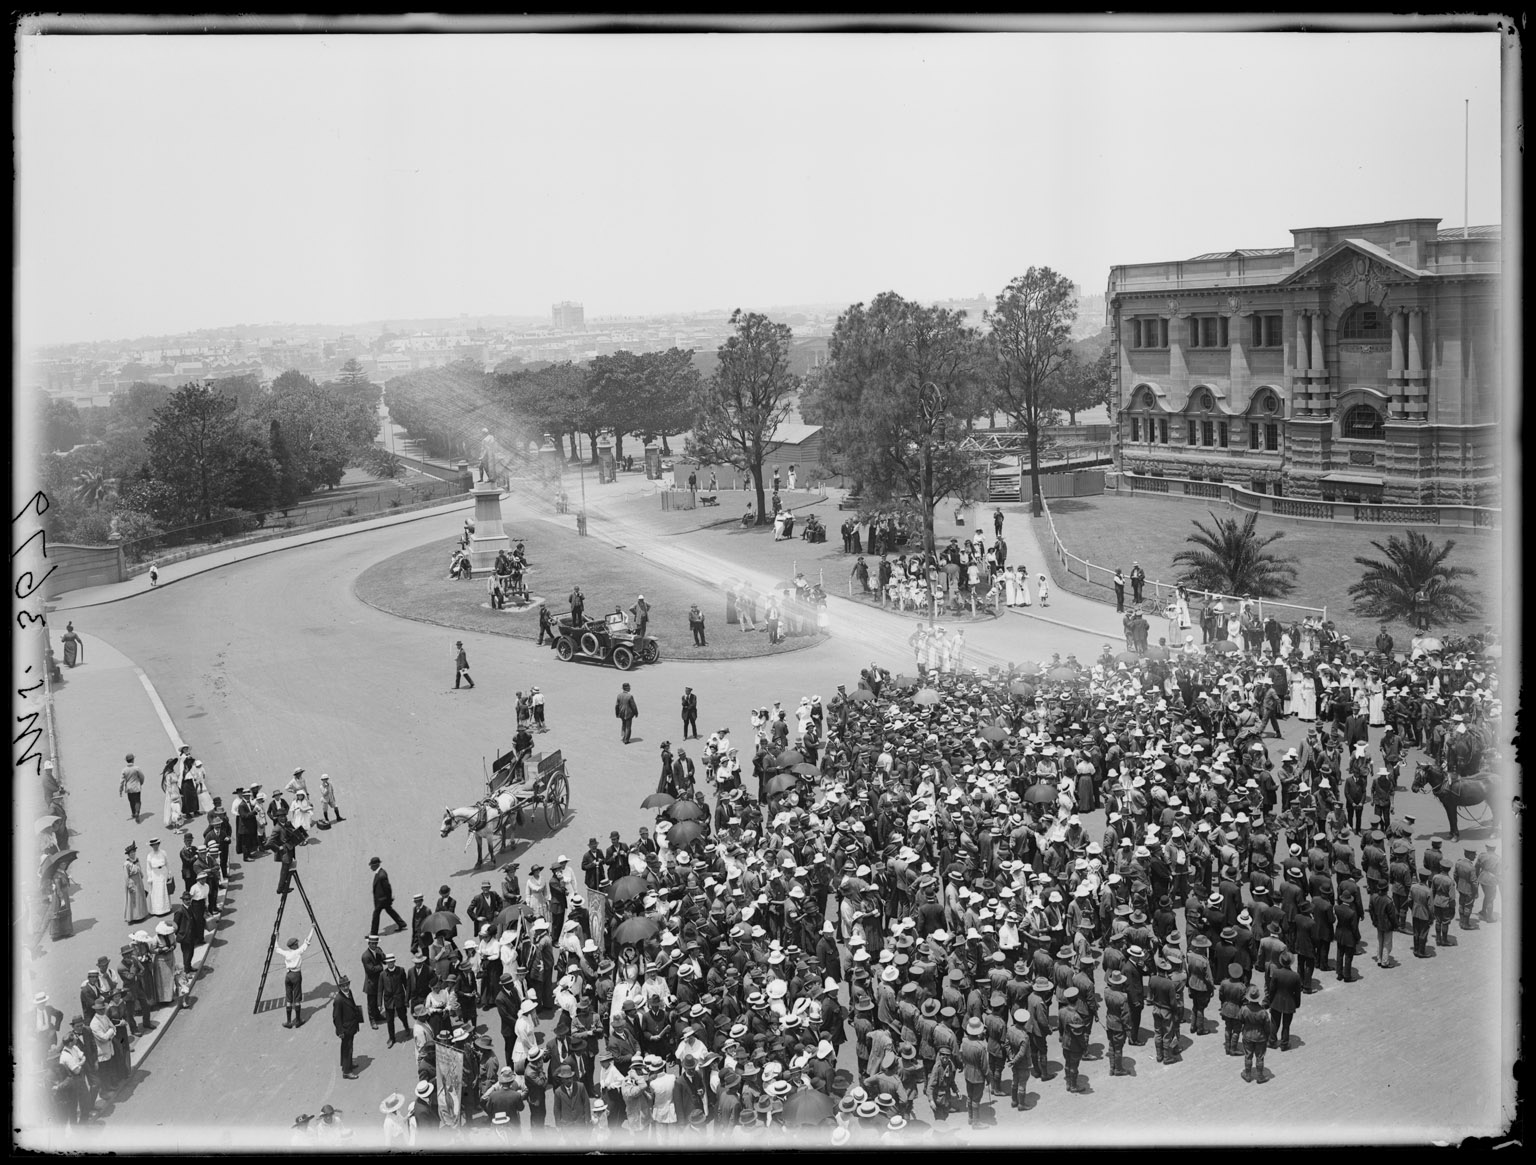 Photographing the 'Kangaroos' as they gather on Macquarie Street near the Mitchell Library at the completion of their recruitment march from Wagga Wagga to Sydney. At Domain entrance:  Return of the 'Kangaroos', The Domain, Sydney, 1916.  NRS 4481 MS 3679